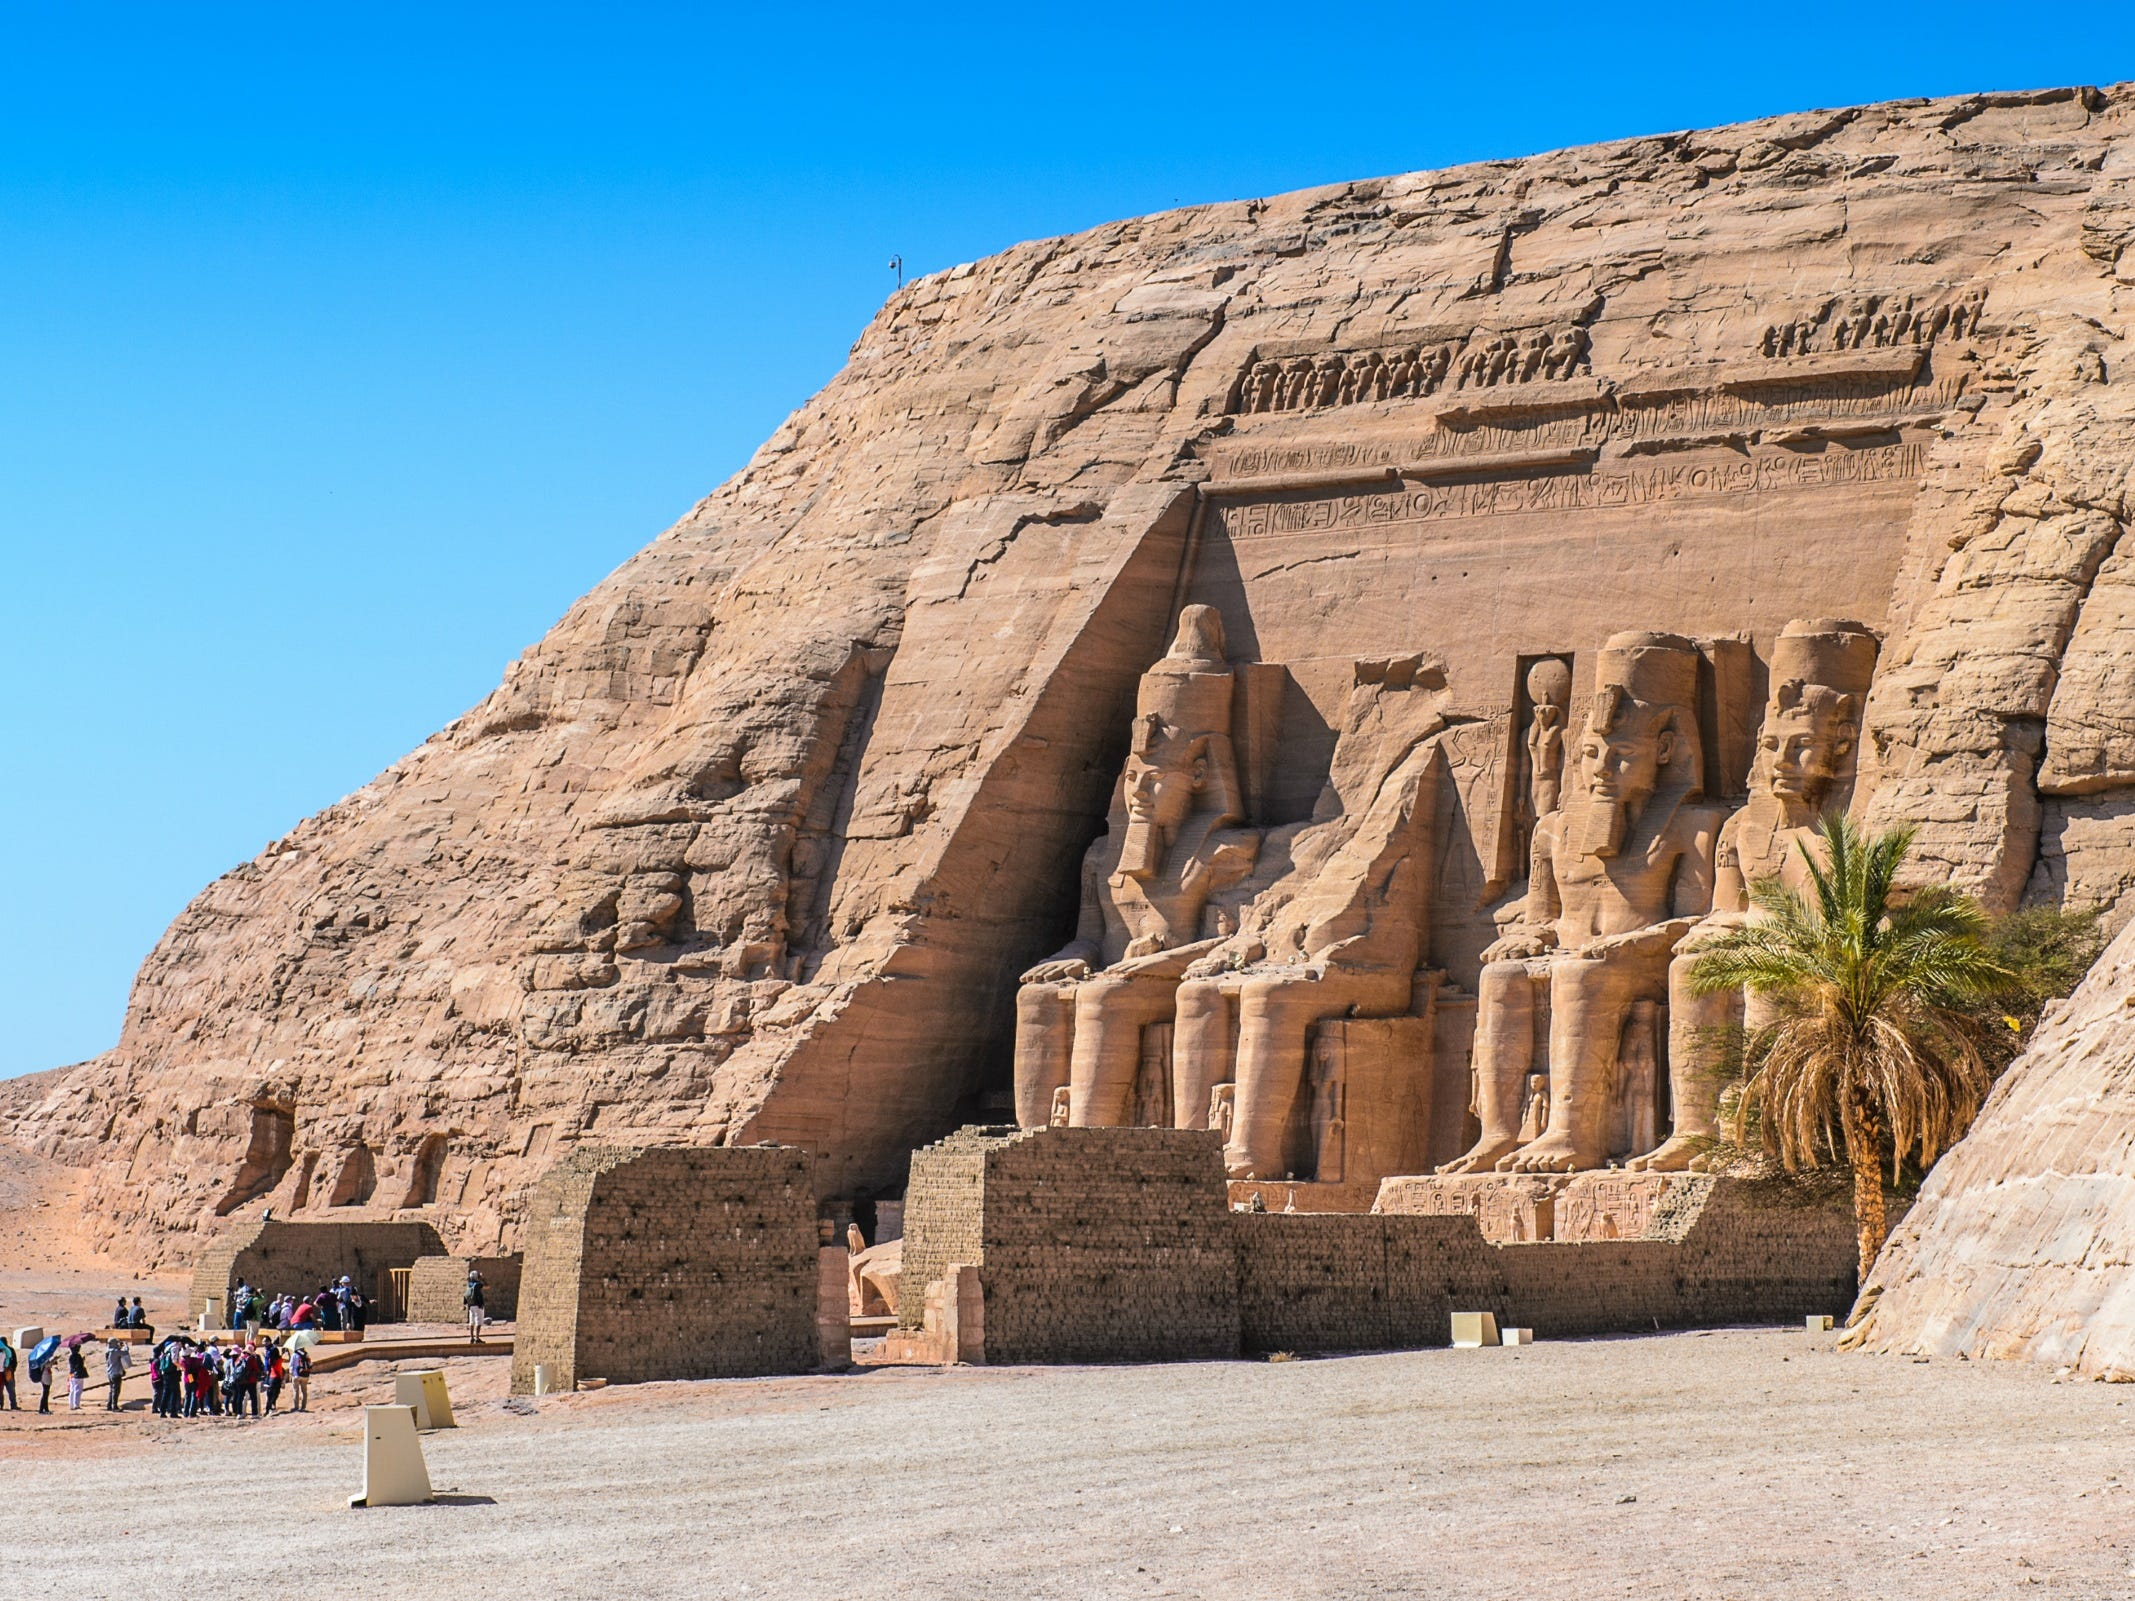 No. 1 on the list of best value places to visit in 2019 is the Southern Nile Valley, Egypt.